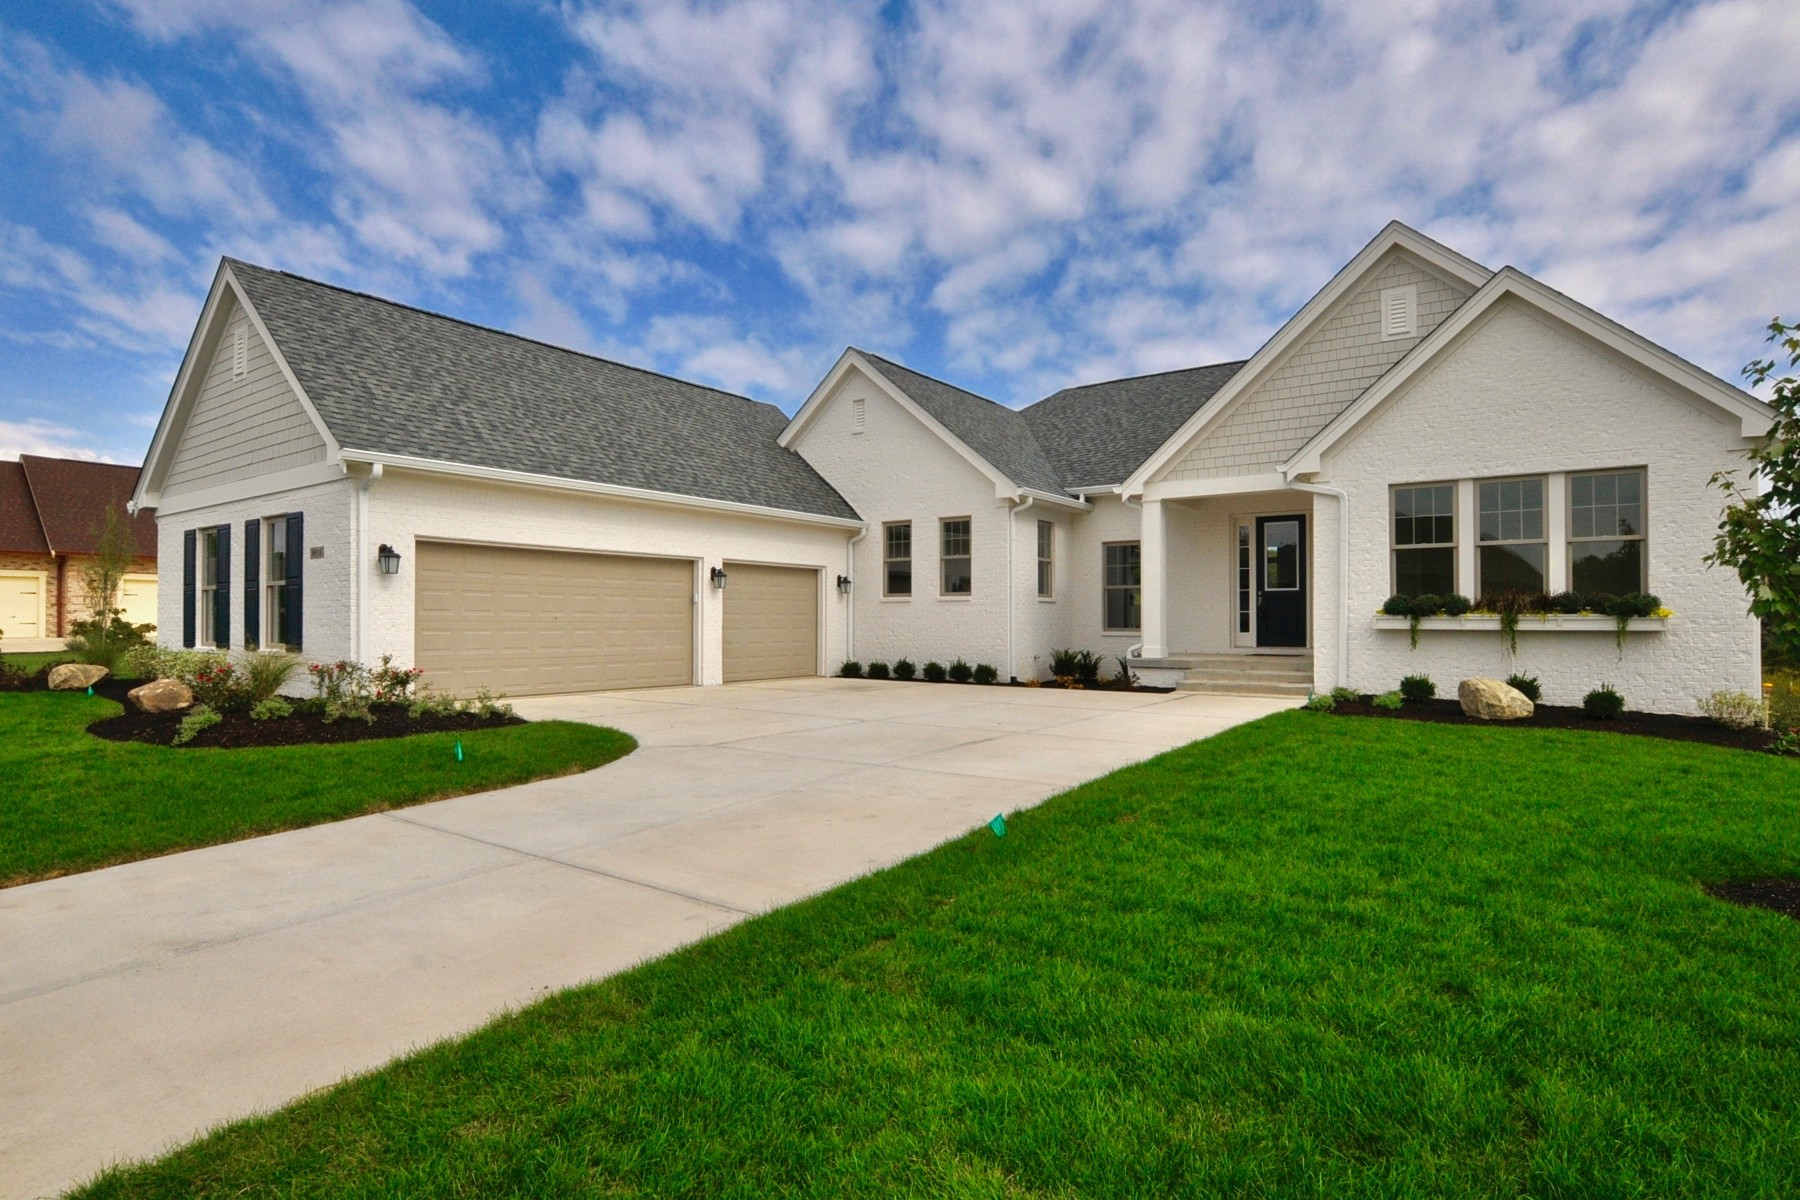 Single Family Home for Sale at Top of the Line Finishes 9915 S. Towne Lane Carmel, Indiana 46033 United States